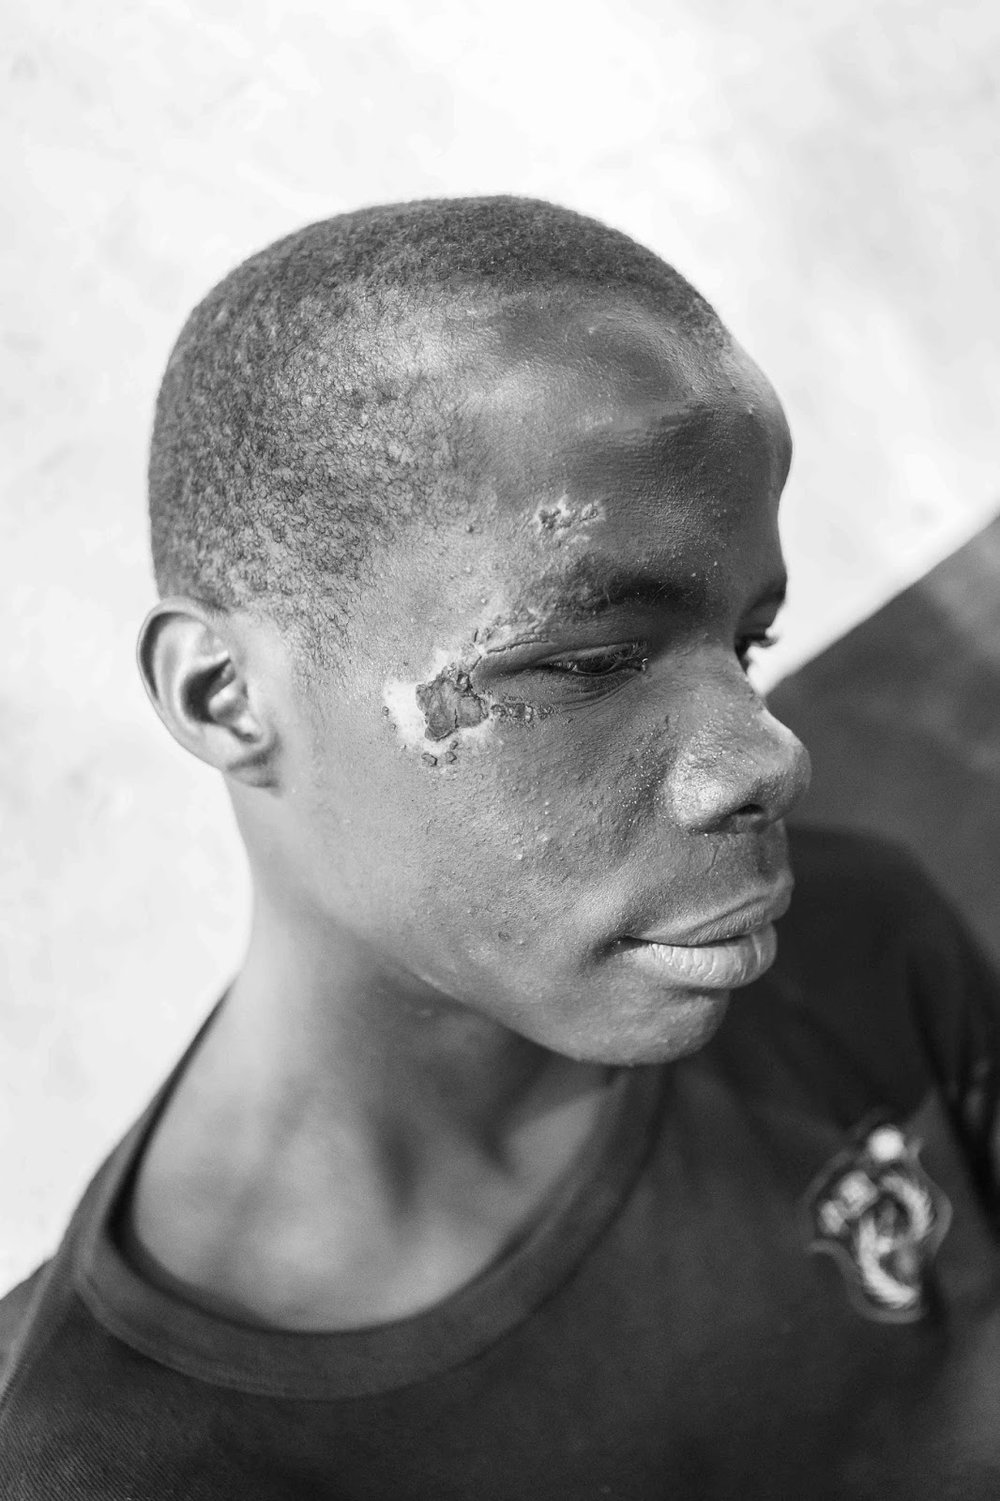 - Police continually raid the children's sleeping areas, keeping them moving to different sides of the border each night. This boy was badly beaten by police as they cleared the children from under a veranda where they slept.